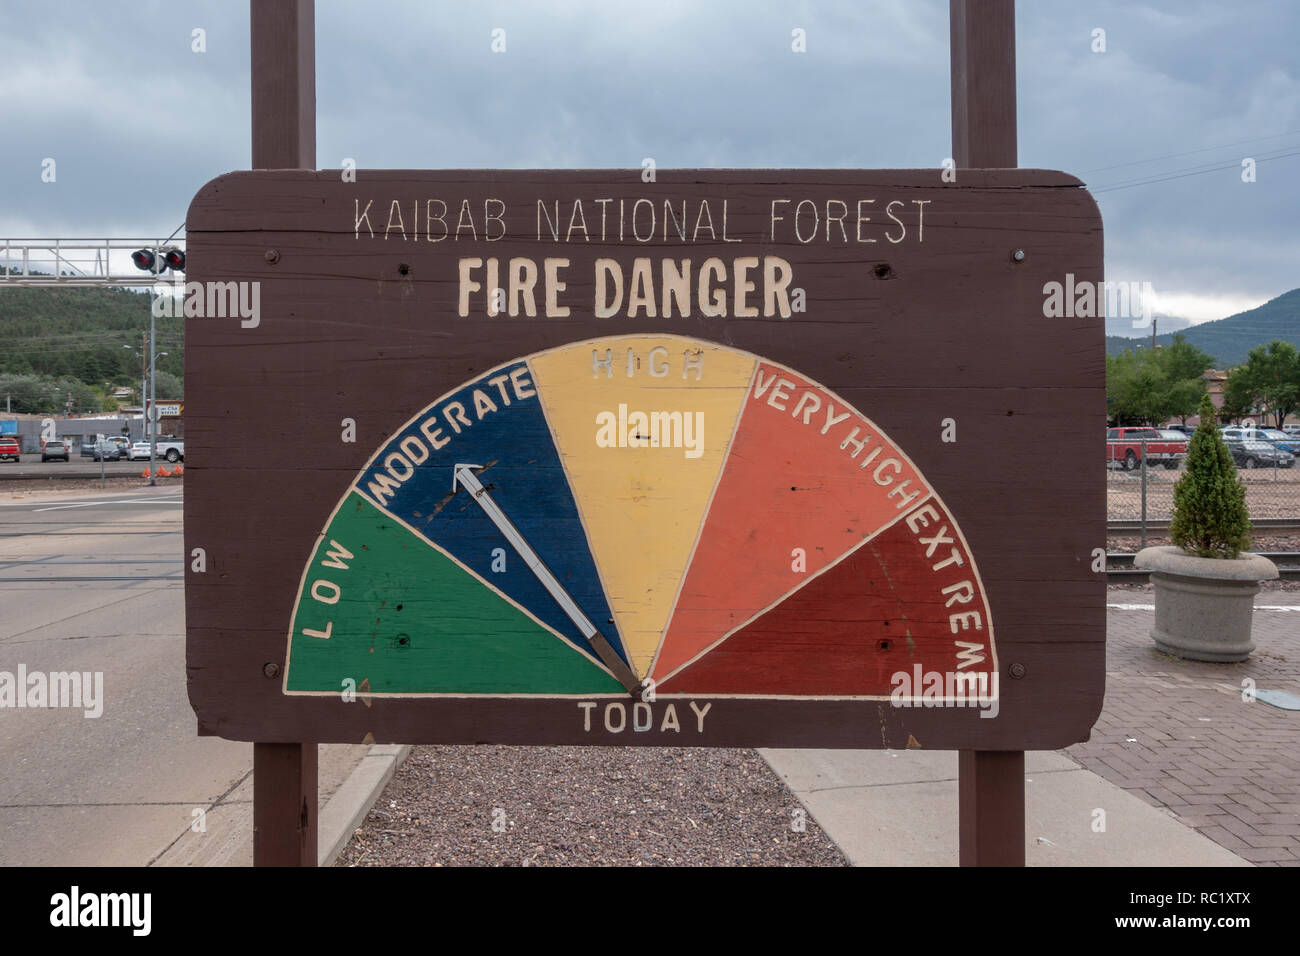 Kaibab National Forest fire danger notice (set at moderate) in Williams, northern Arizona, USA. - Stock Image